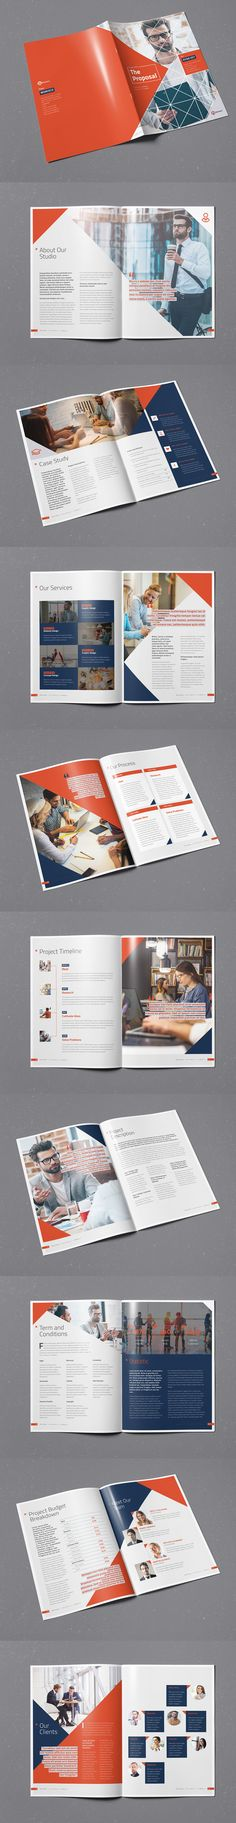 Corporate Proposal Brochure Template InDesign INDD - 20 pages, A4